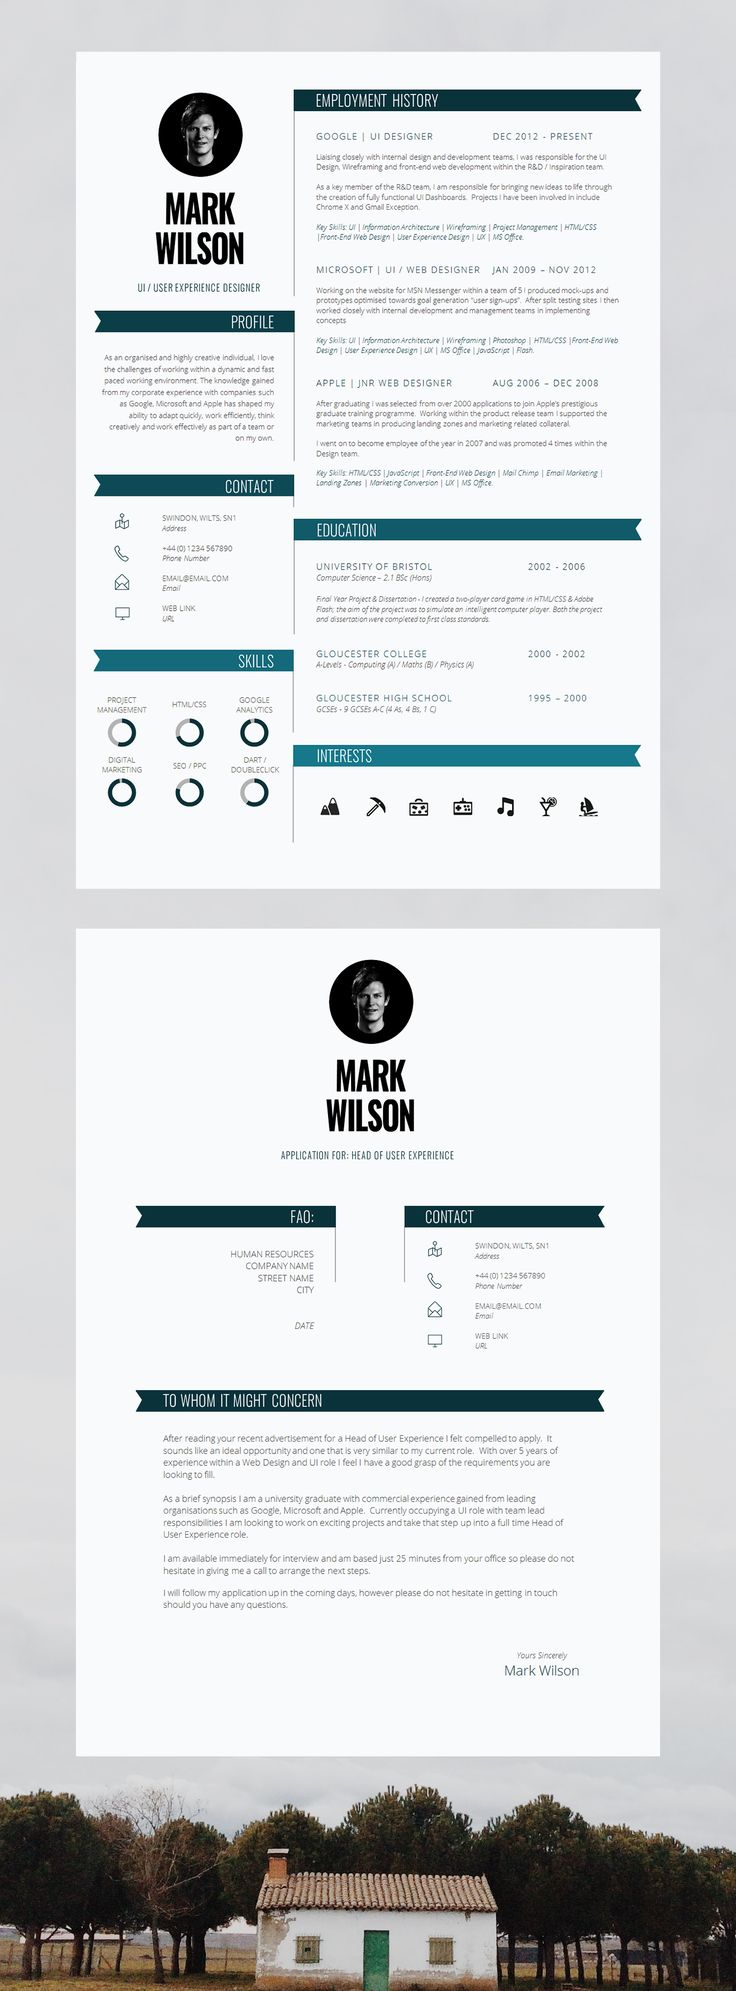 best ideas about creative cv template creative a resume guide and cv template rolled up into one handy